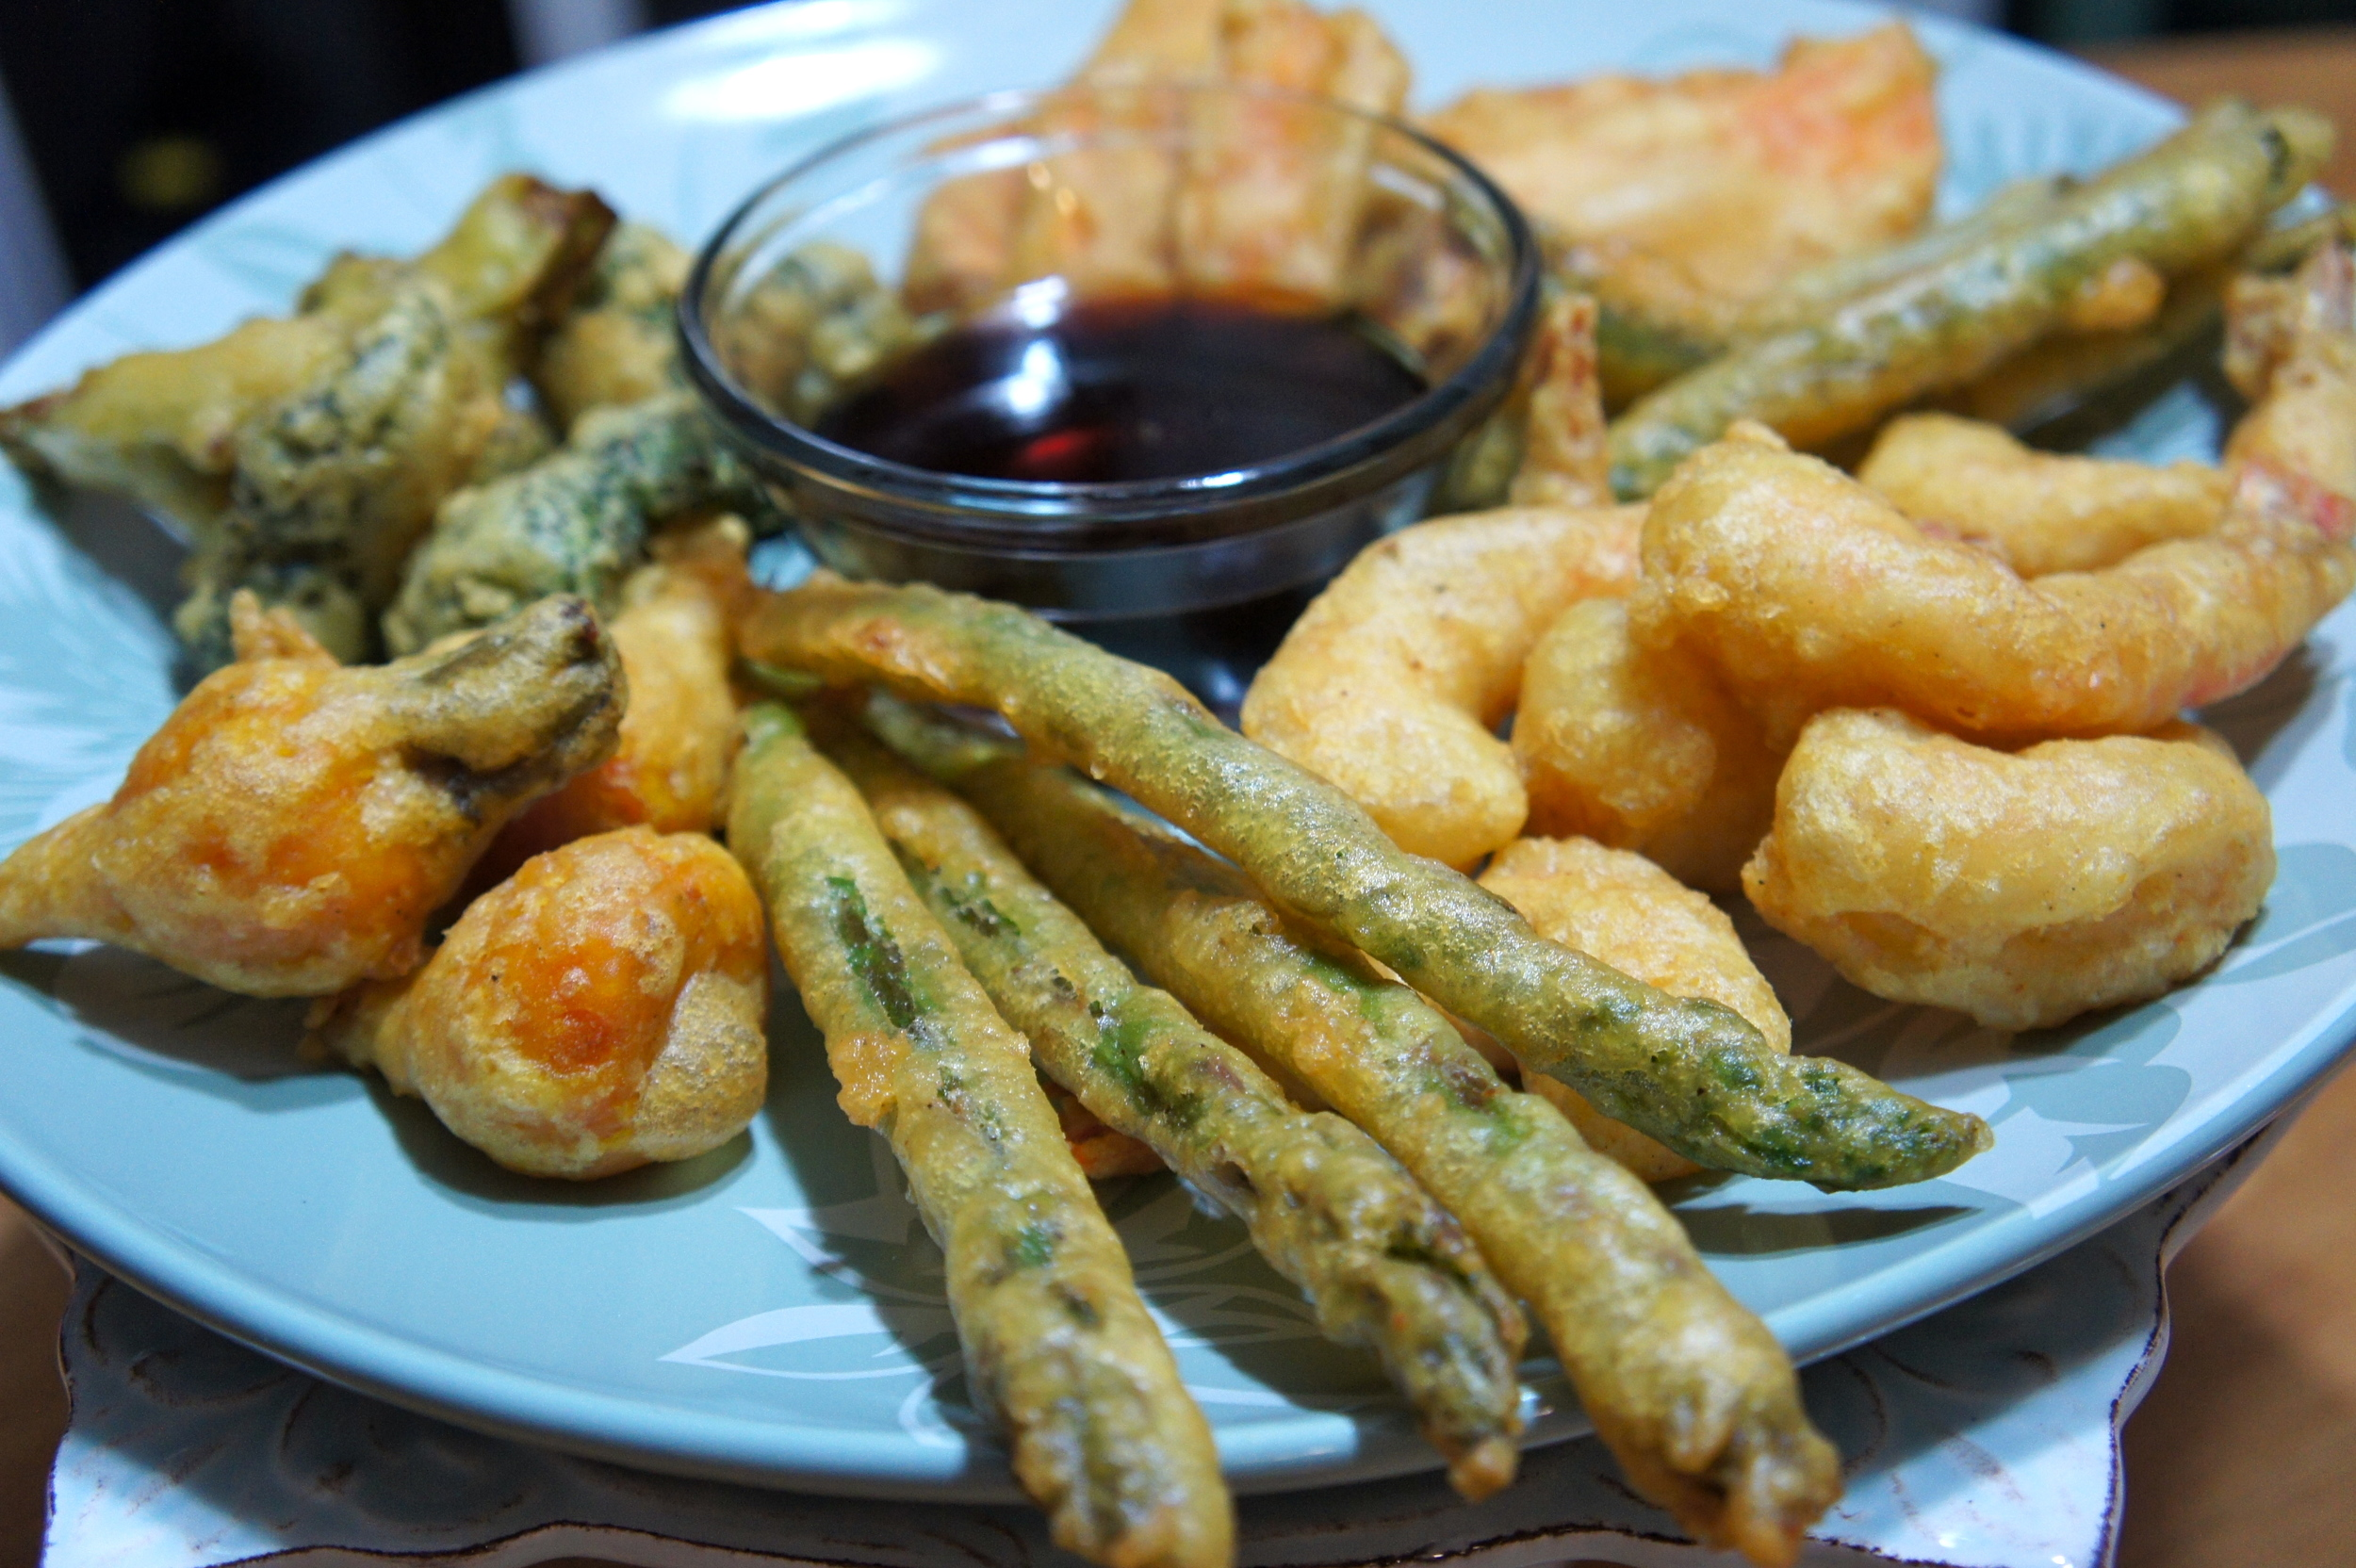 Veggie and Shrimp Tempura with Ponzu Sauce